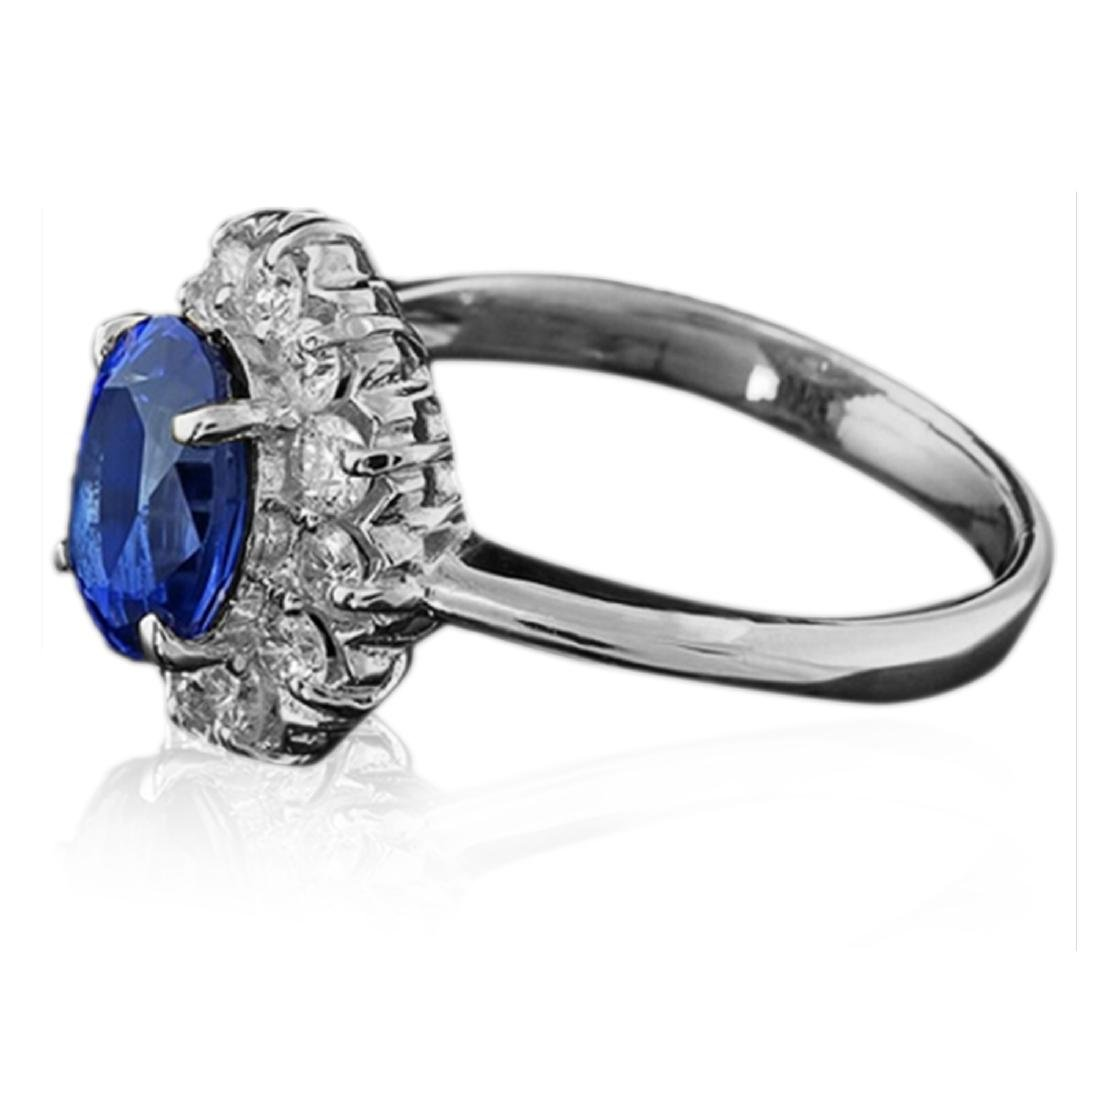 2.25 Carat Natural Sapphire 18K Solid White Gold - 2